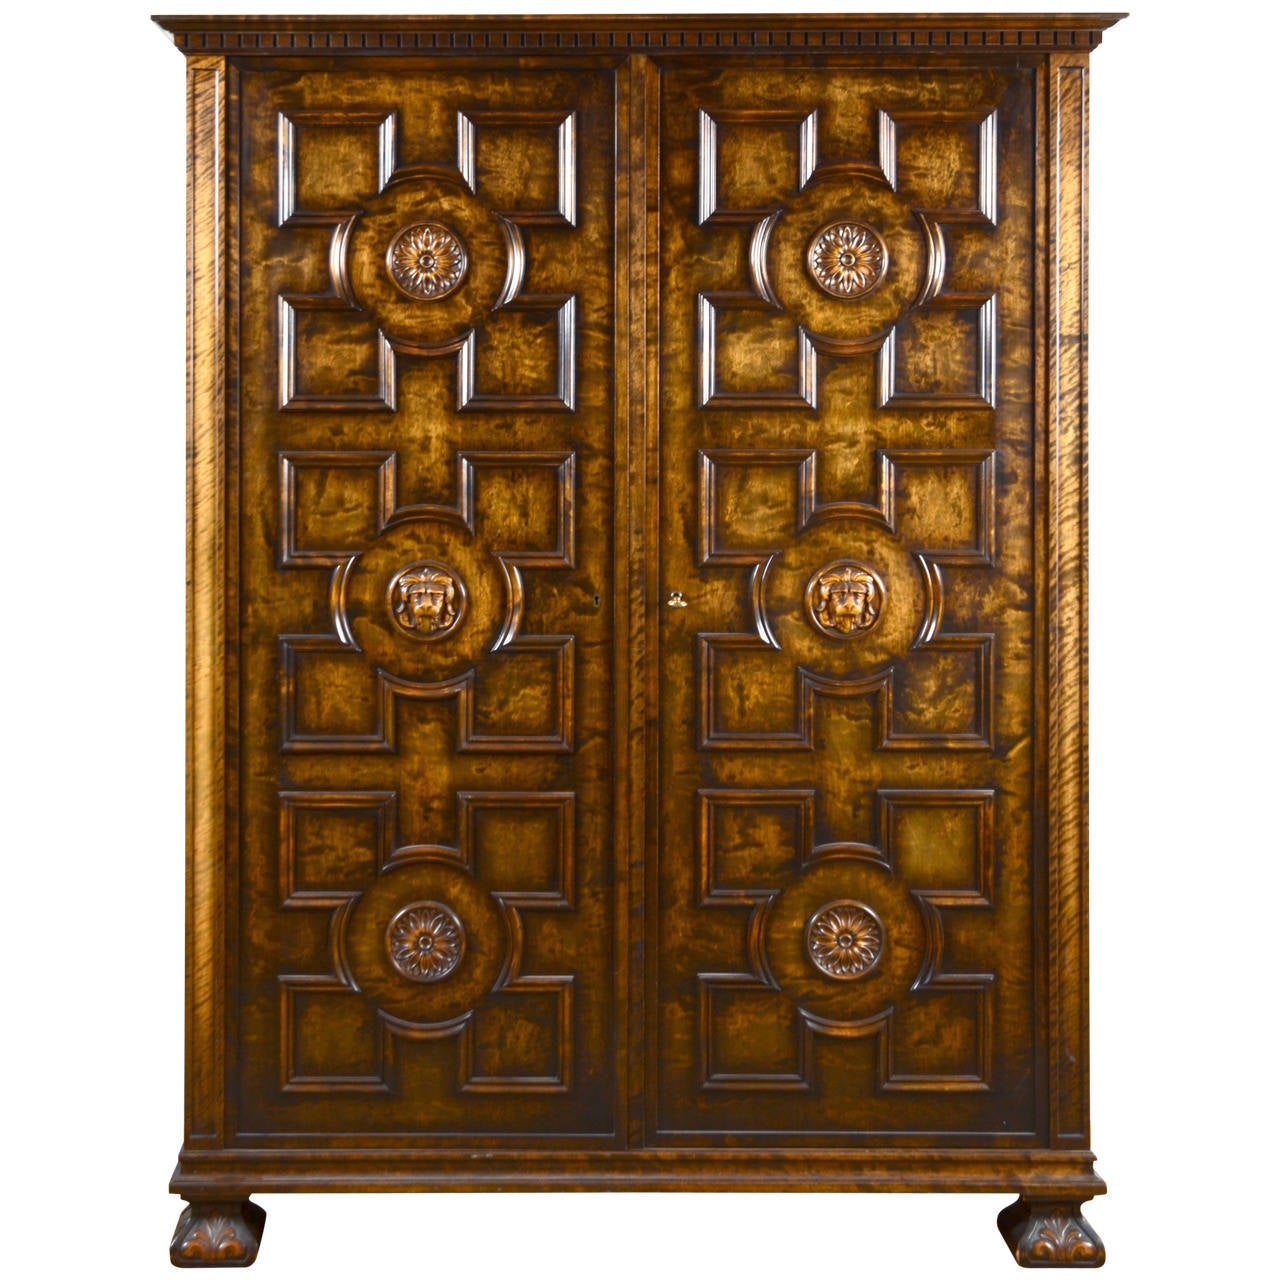 "Axel Einar Hjorth, Cabinet ""Roma"" in Stained Birch, Bodafors, Sweden, 1920s For Sale"